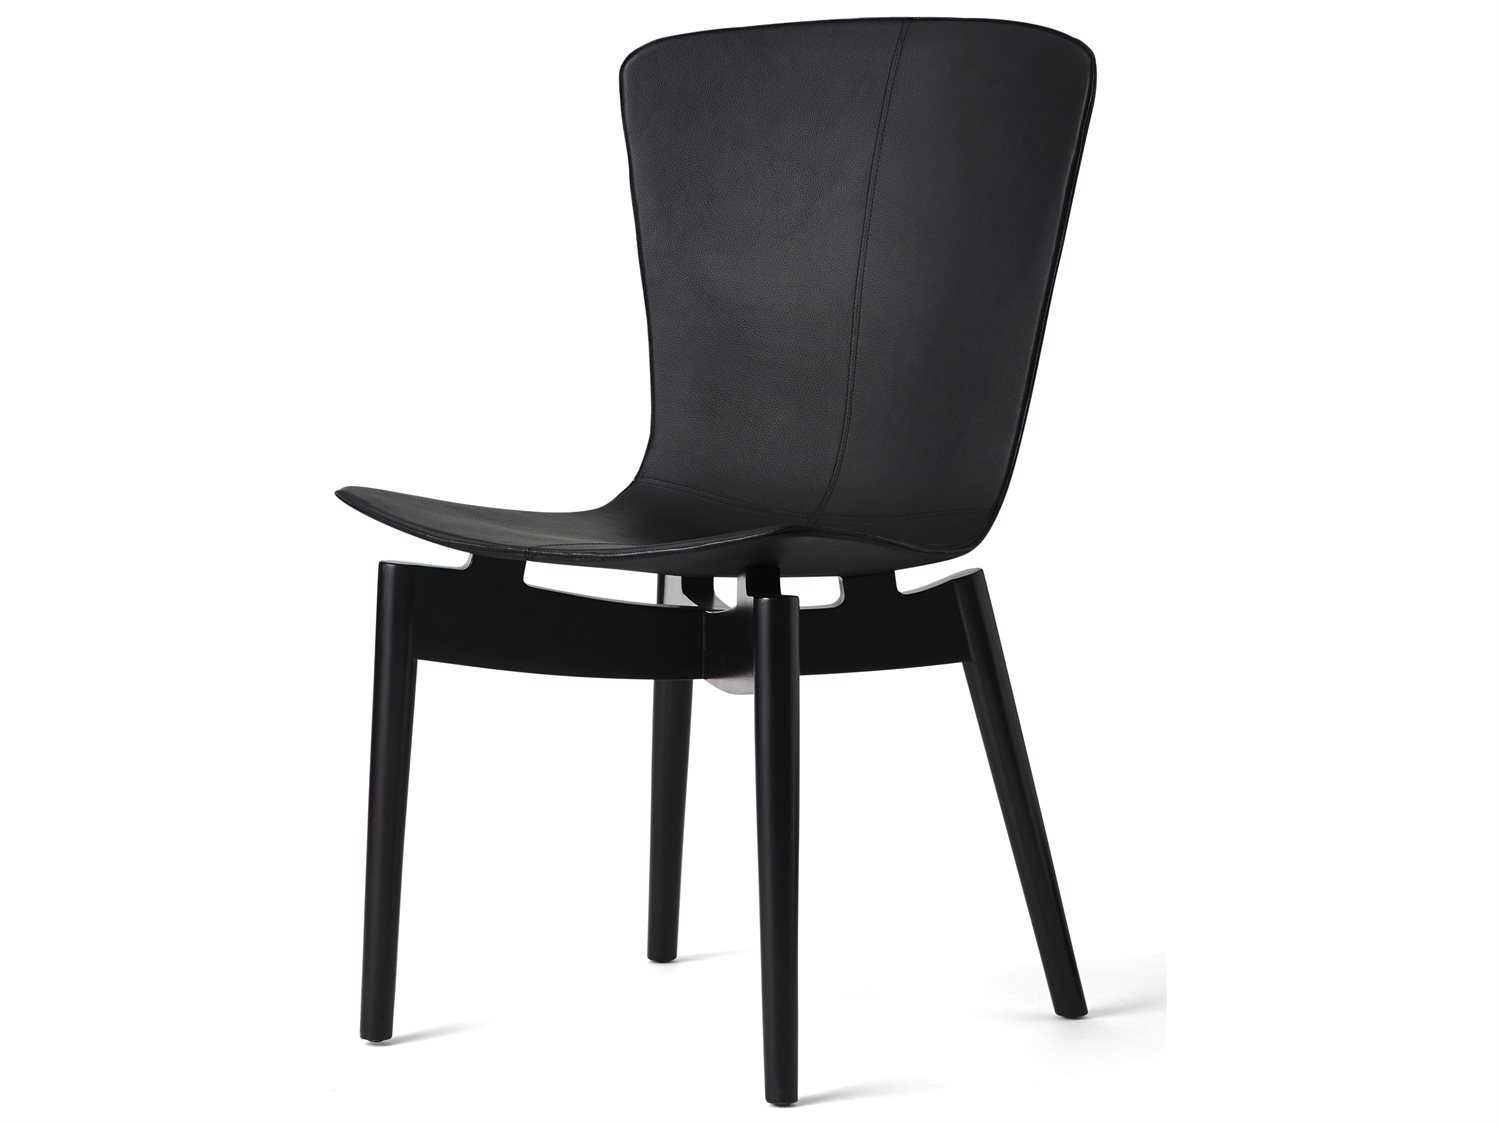 mater shell black leather dining chair 02103. Black Bedroom Furniture Sets. Home Design Ideas